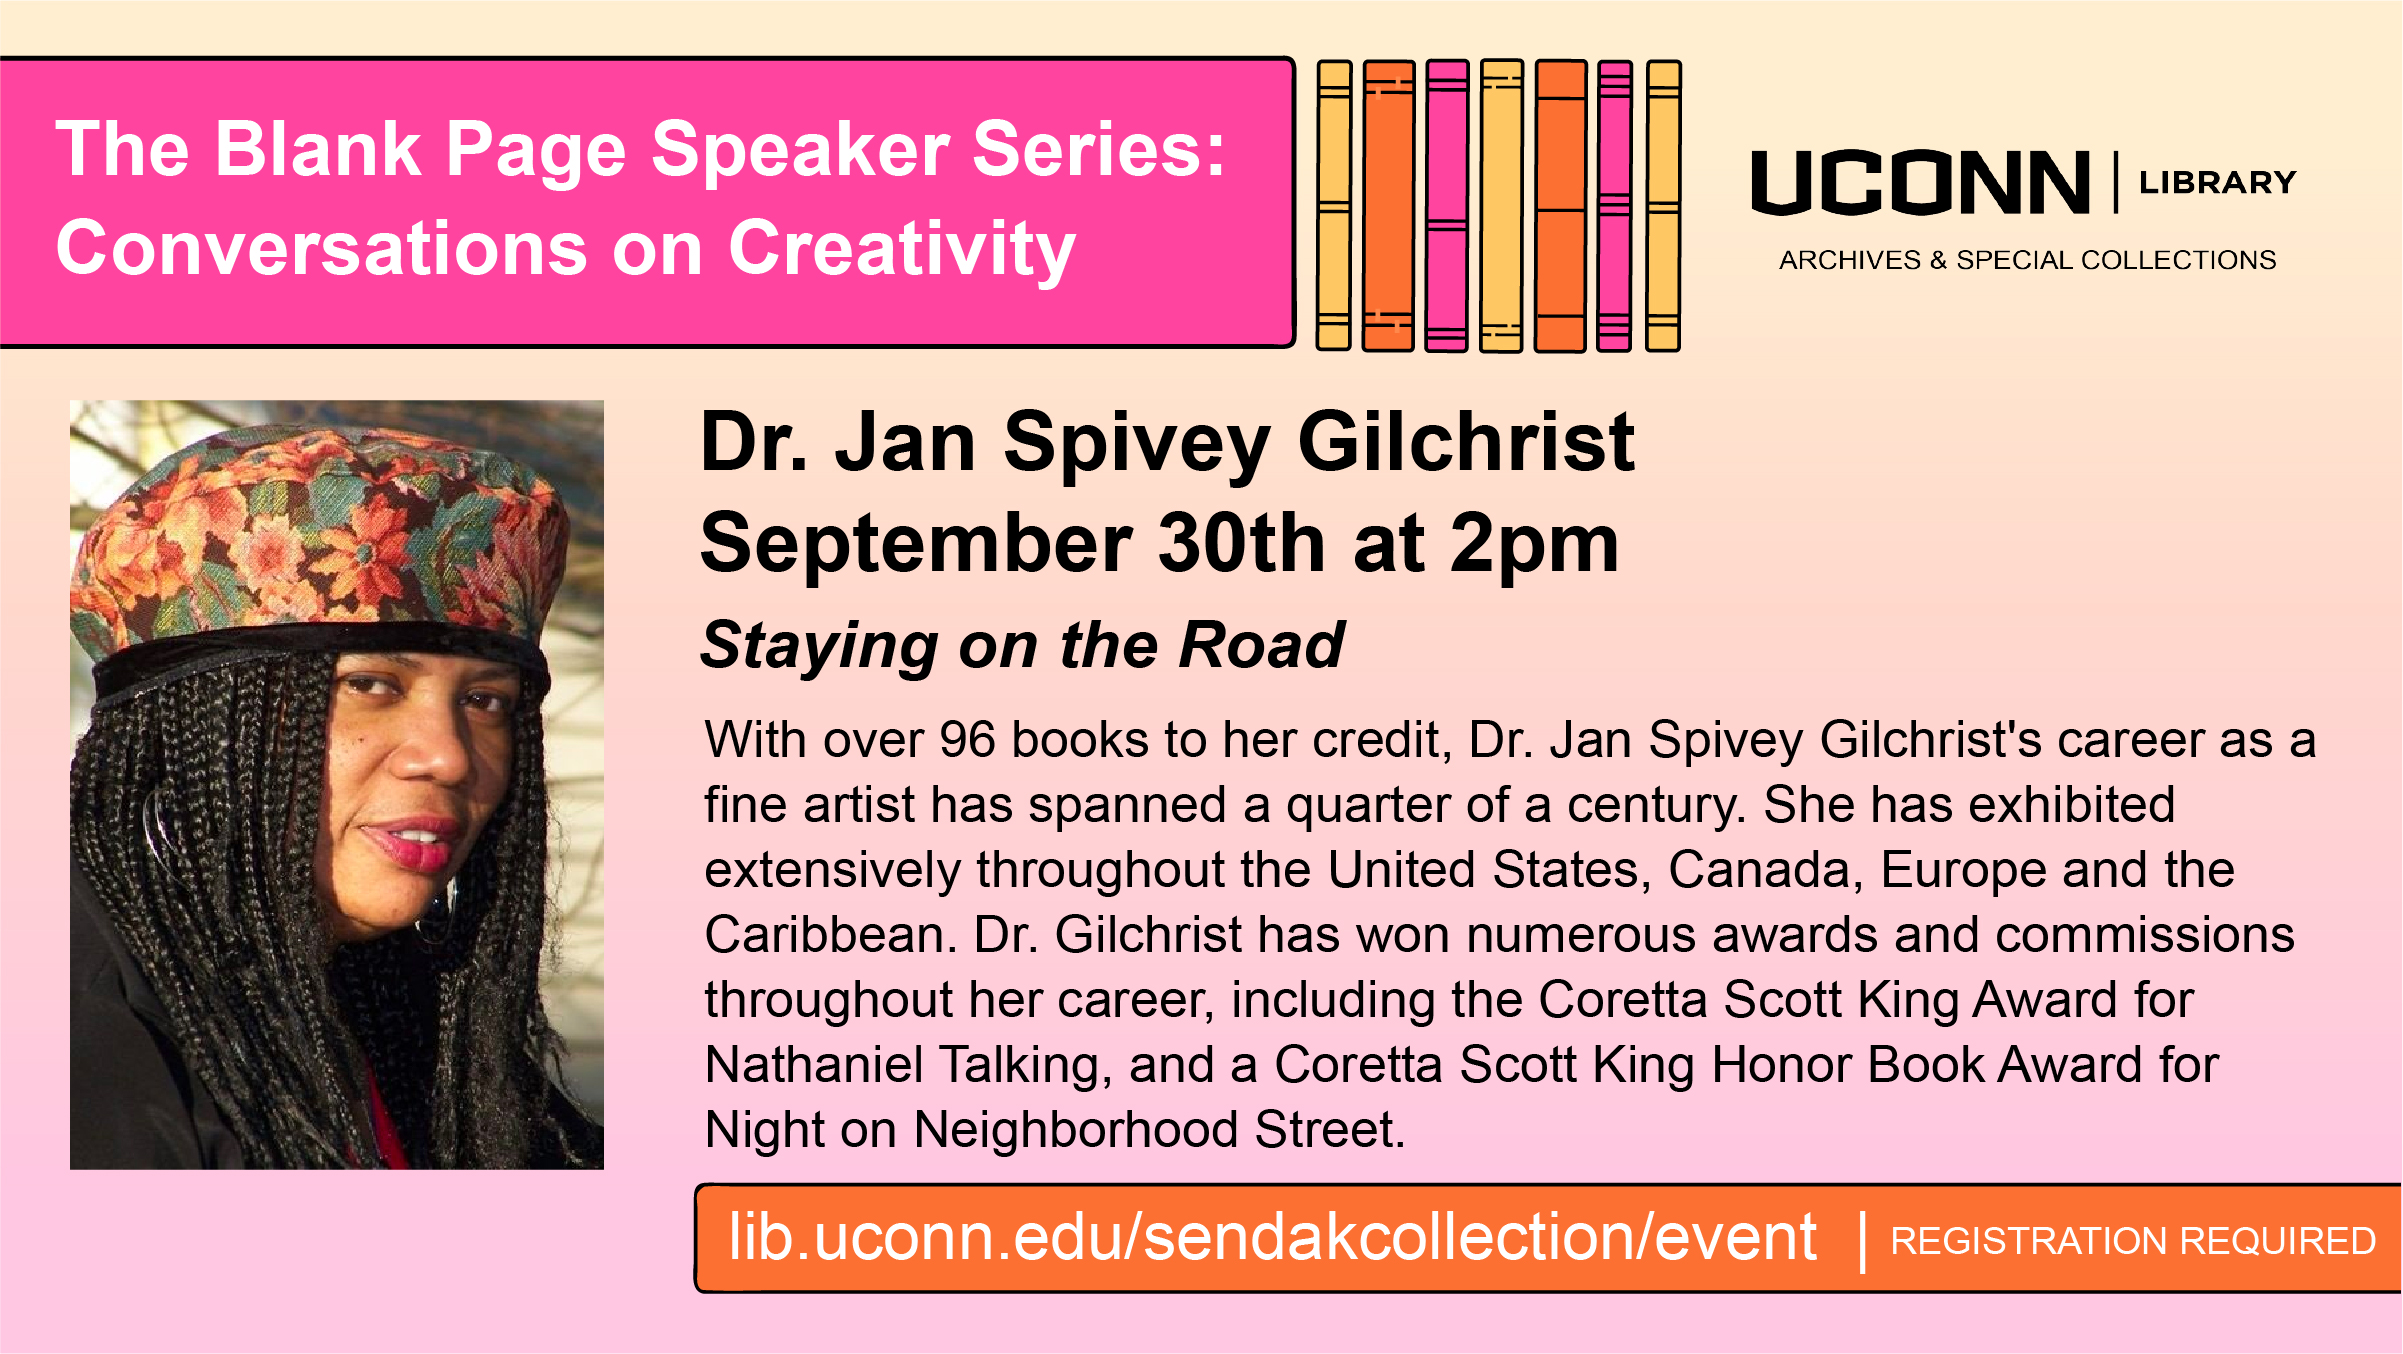 The Blank Page Speaker Series: Conversations on Creativity. Dr. Jan Spivey Gilchrist September 30th at 2pm, Staying on the Road, With over 96 books to her credit, Dr. Jan Spivey Gilchrist's career as a fine artist has spanned a quarter of a century. She has exhibited extensively throughout the United States, Canada, Europe and the Caribbean. Dr. Gilchrist has won numerous awards and commissions throughout her career, including the Coretta Scott King Award for Nathaniel Talking, and a Coretta Scott King Honor Book Award for Night on Neighborhood Street. lib.uconn.edu/sendakcollection/event | Registration Required